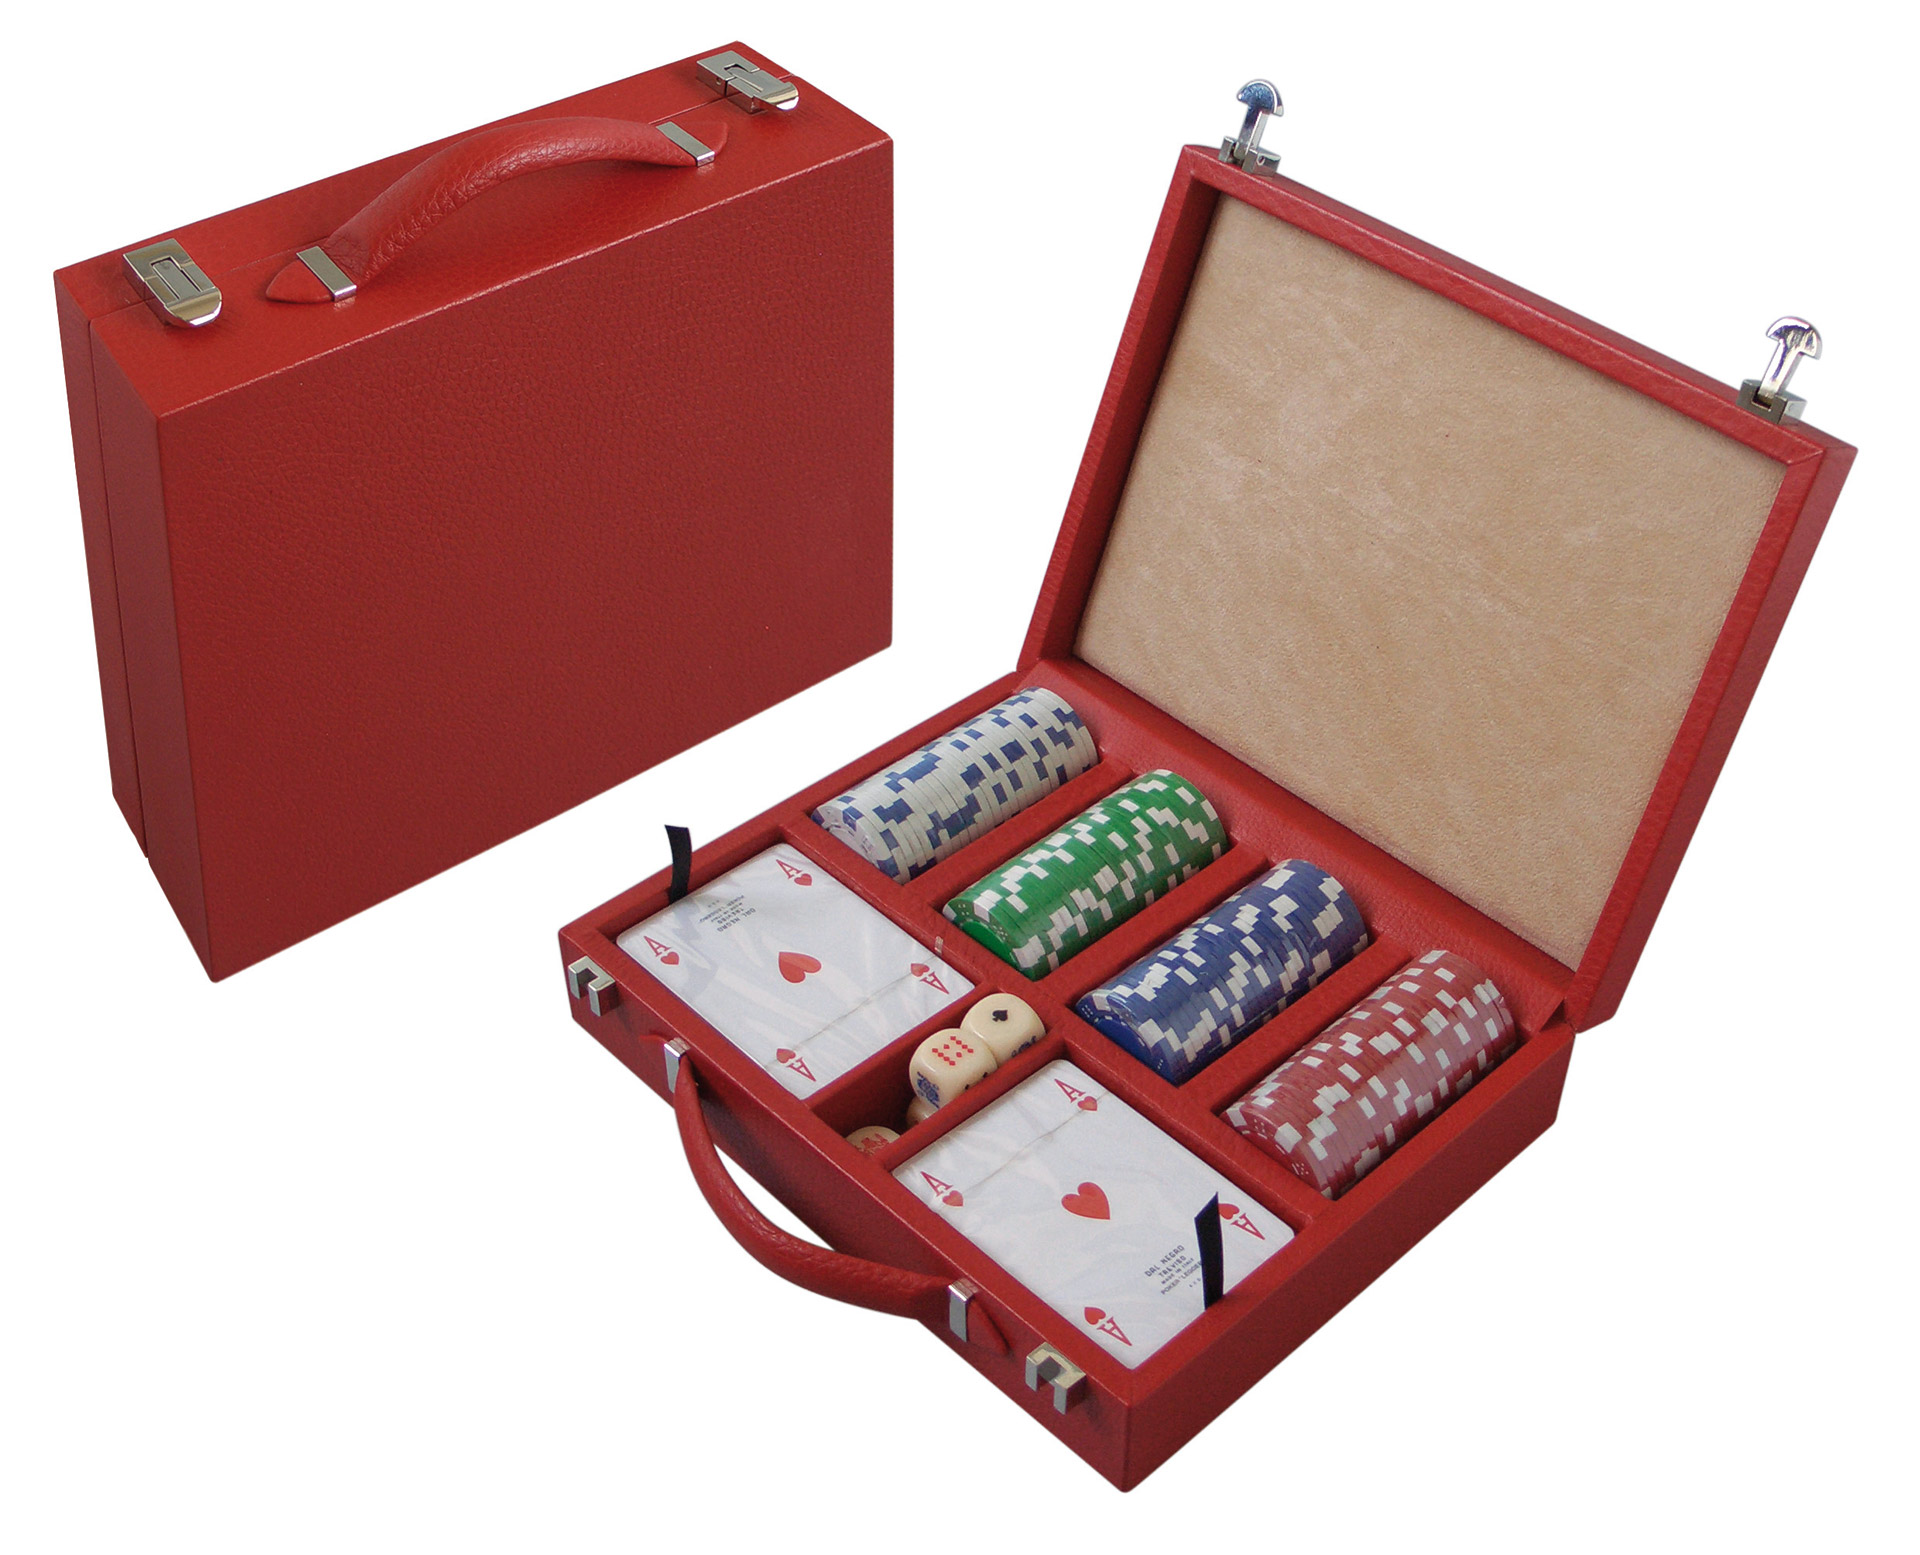 art.2466 poker set 005